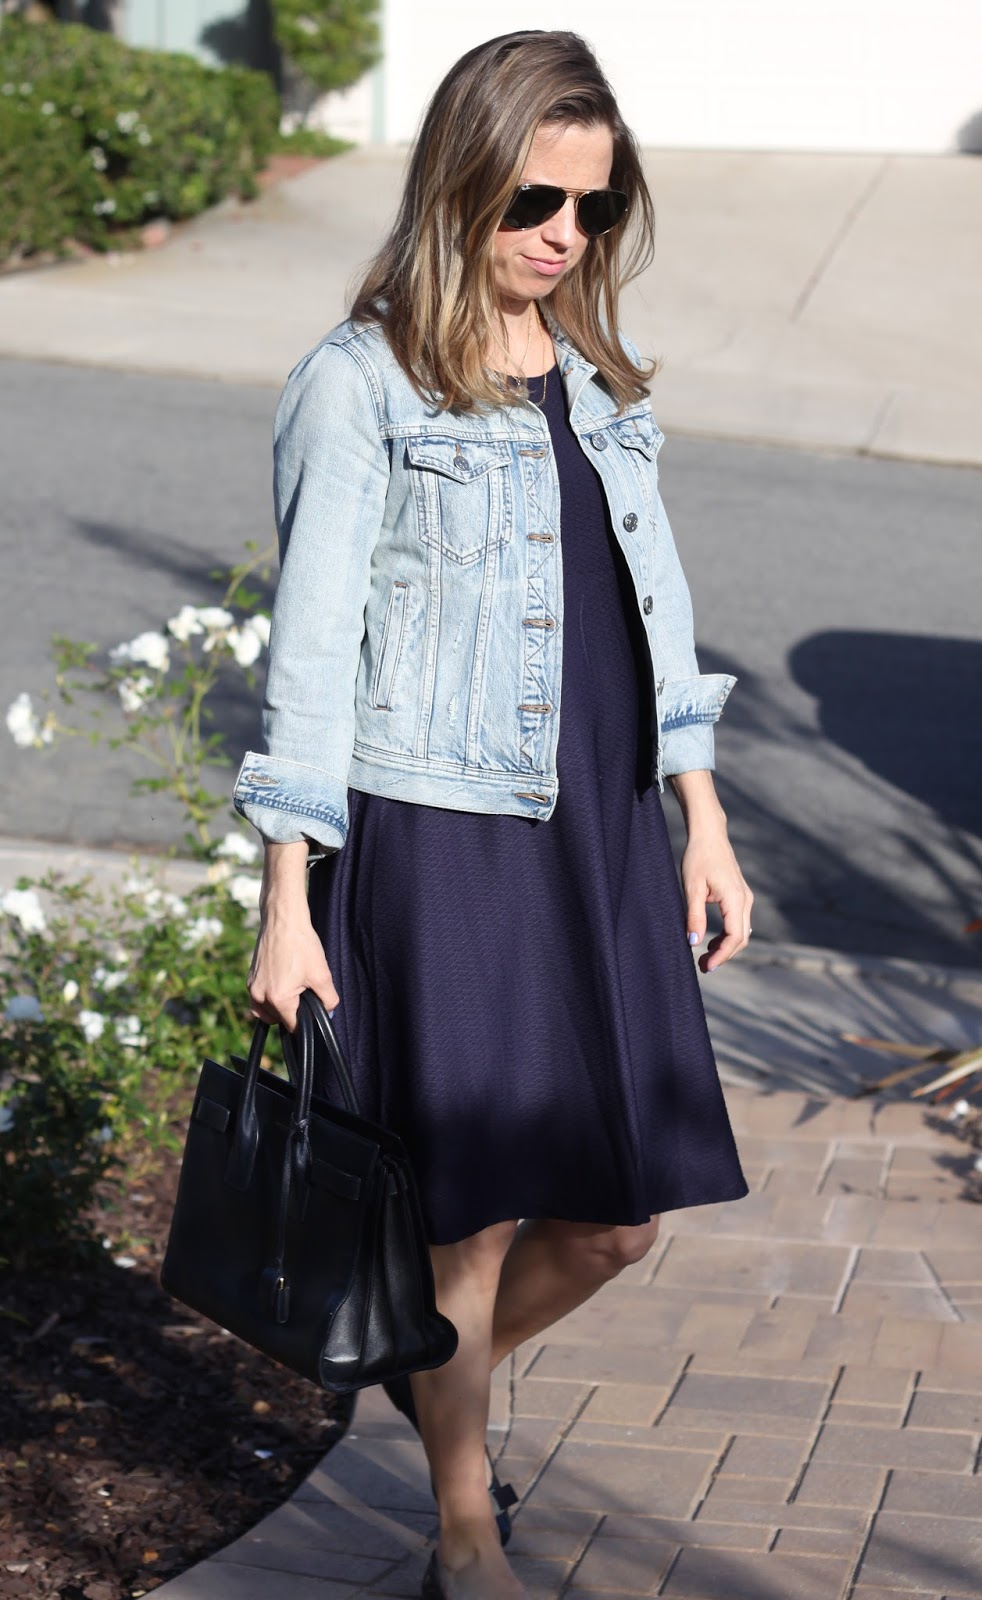 navy maternity outfit